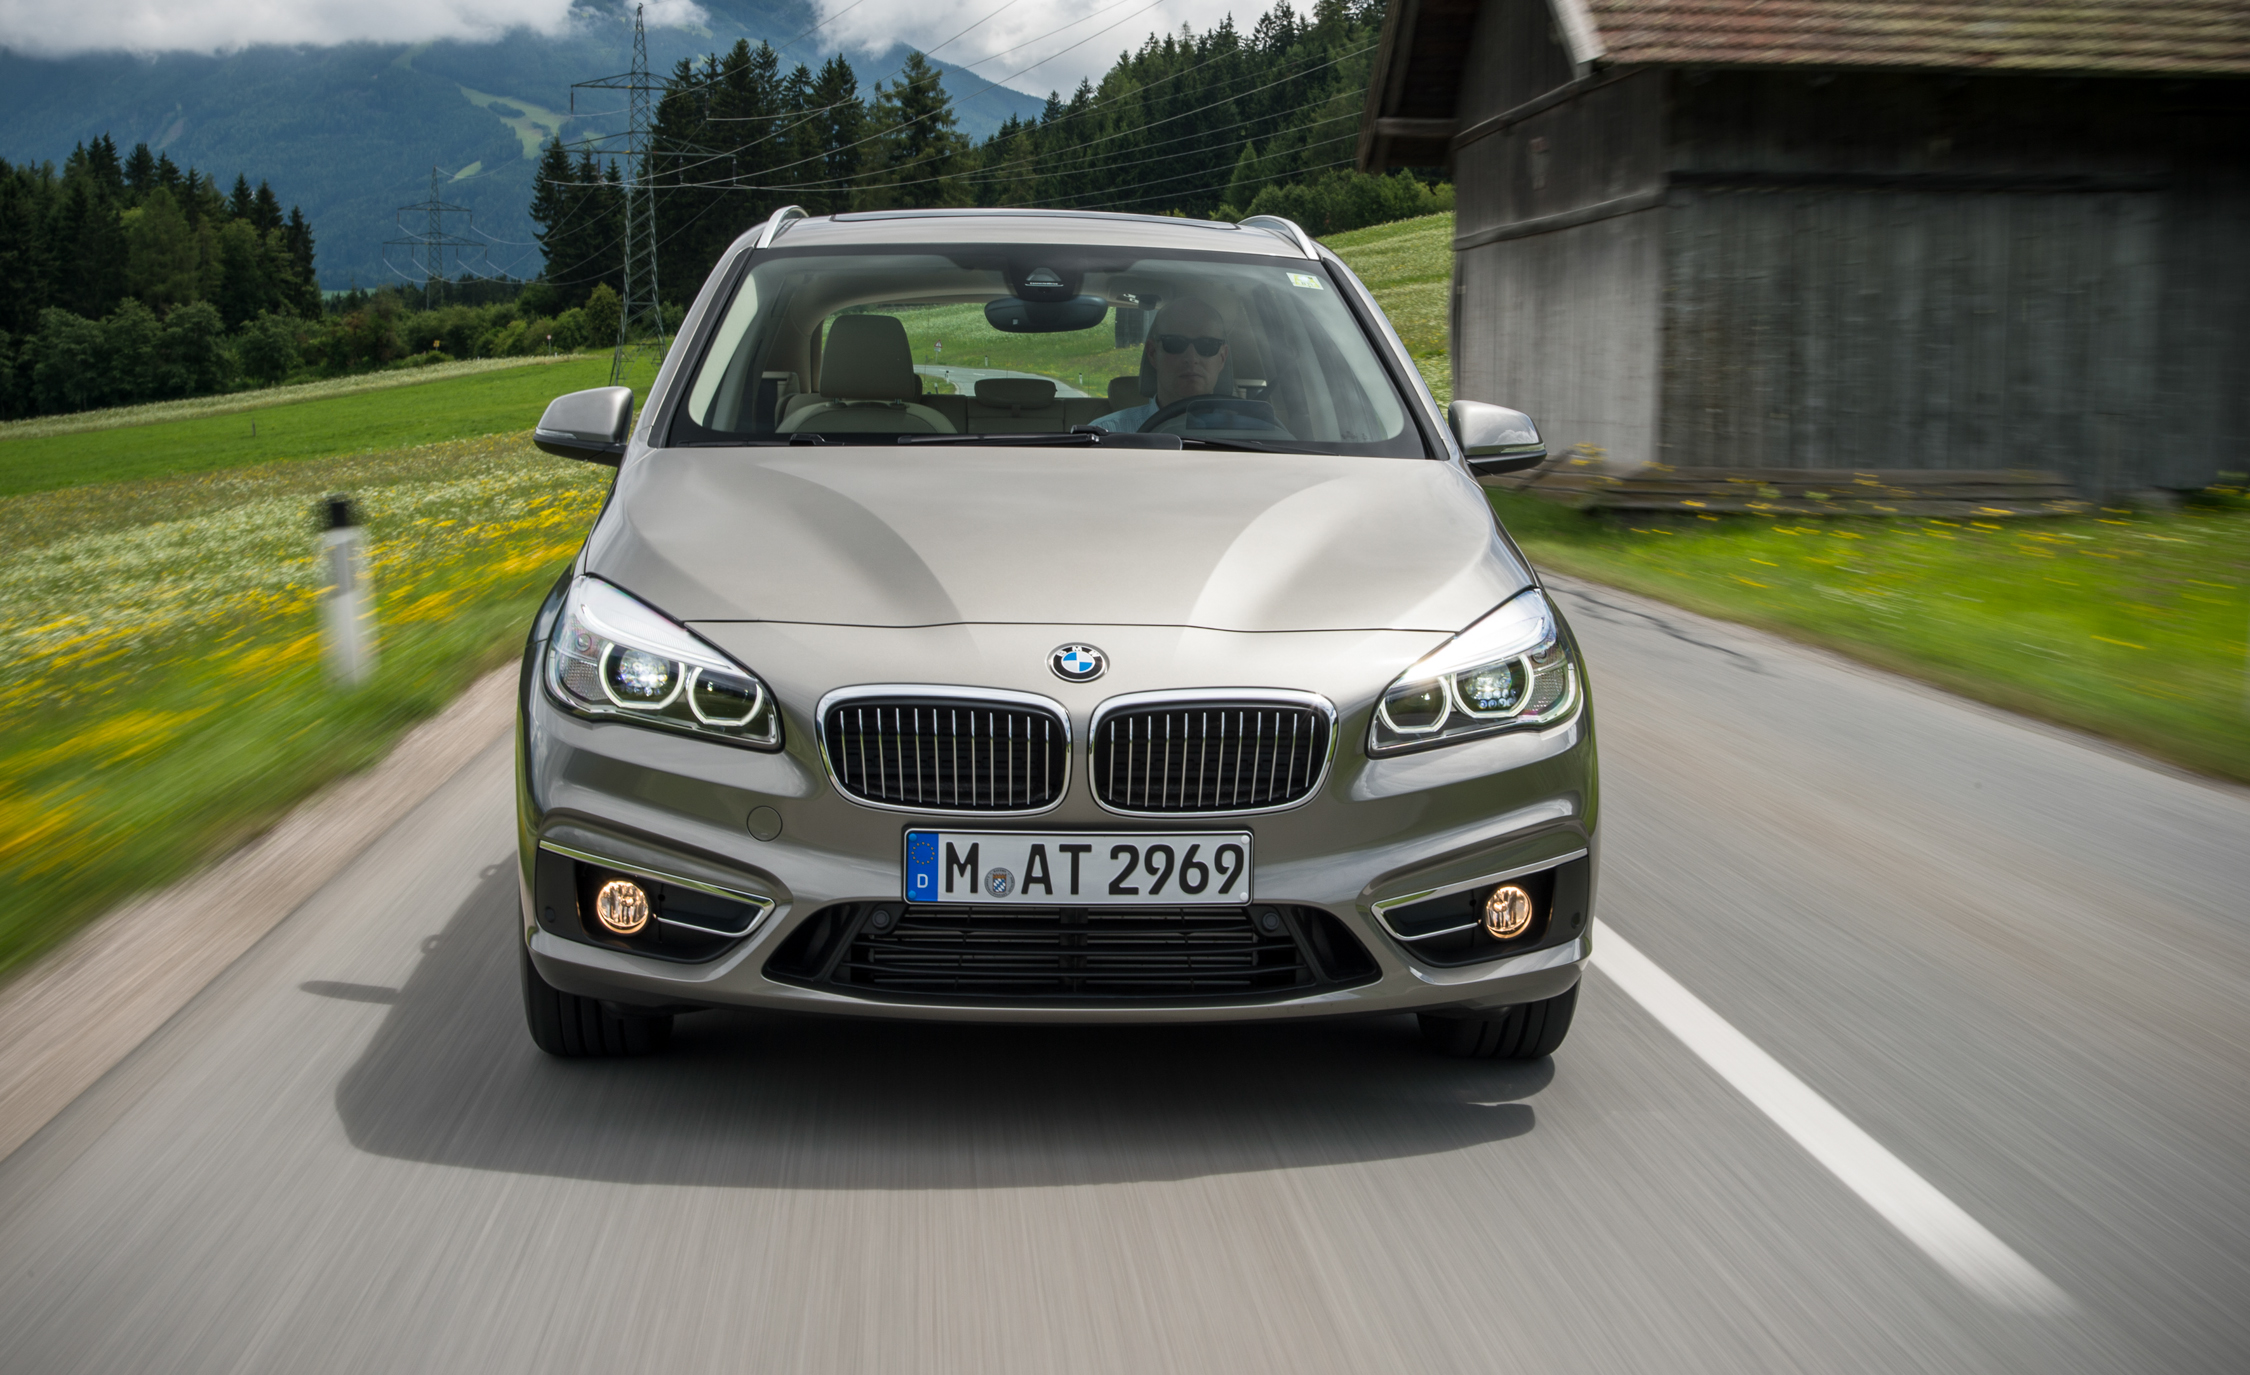 2015 BMW 225i Active Tourer (Euro Spec) (Photo 3 of 14)